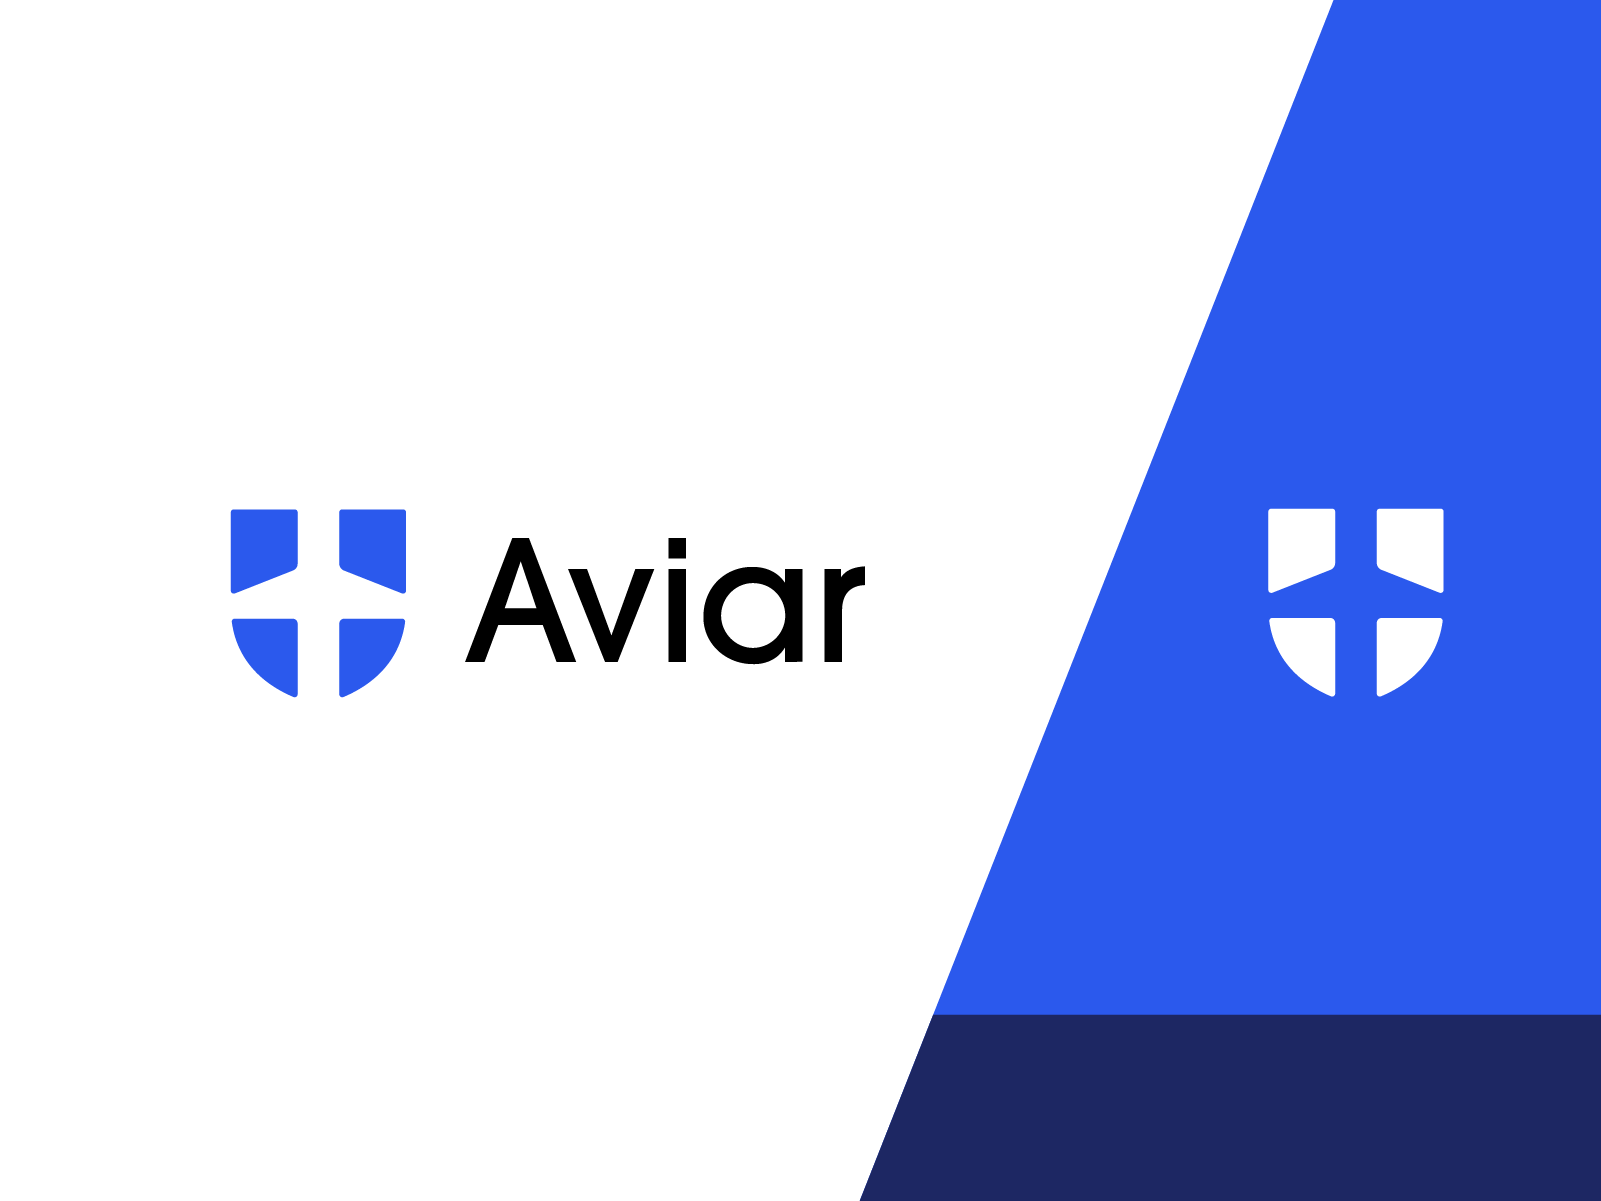 aviar logo design tubik